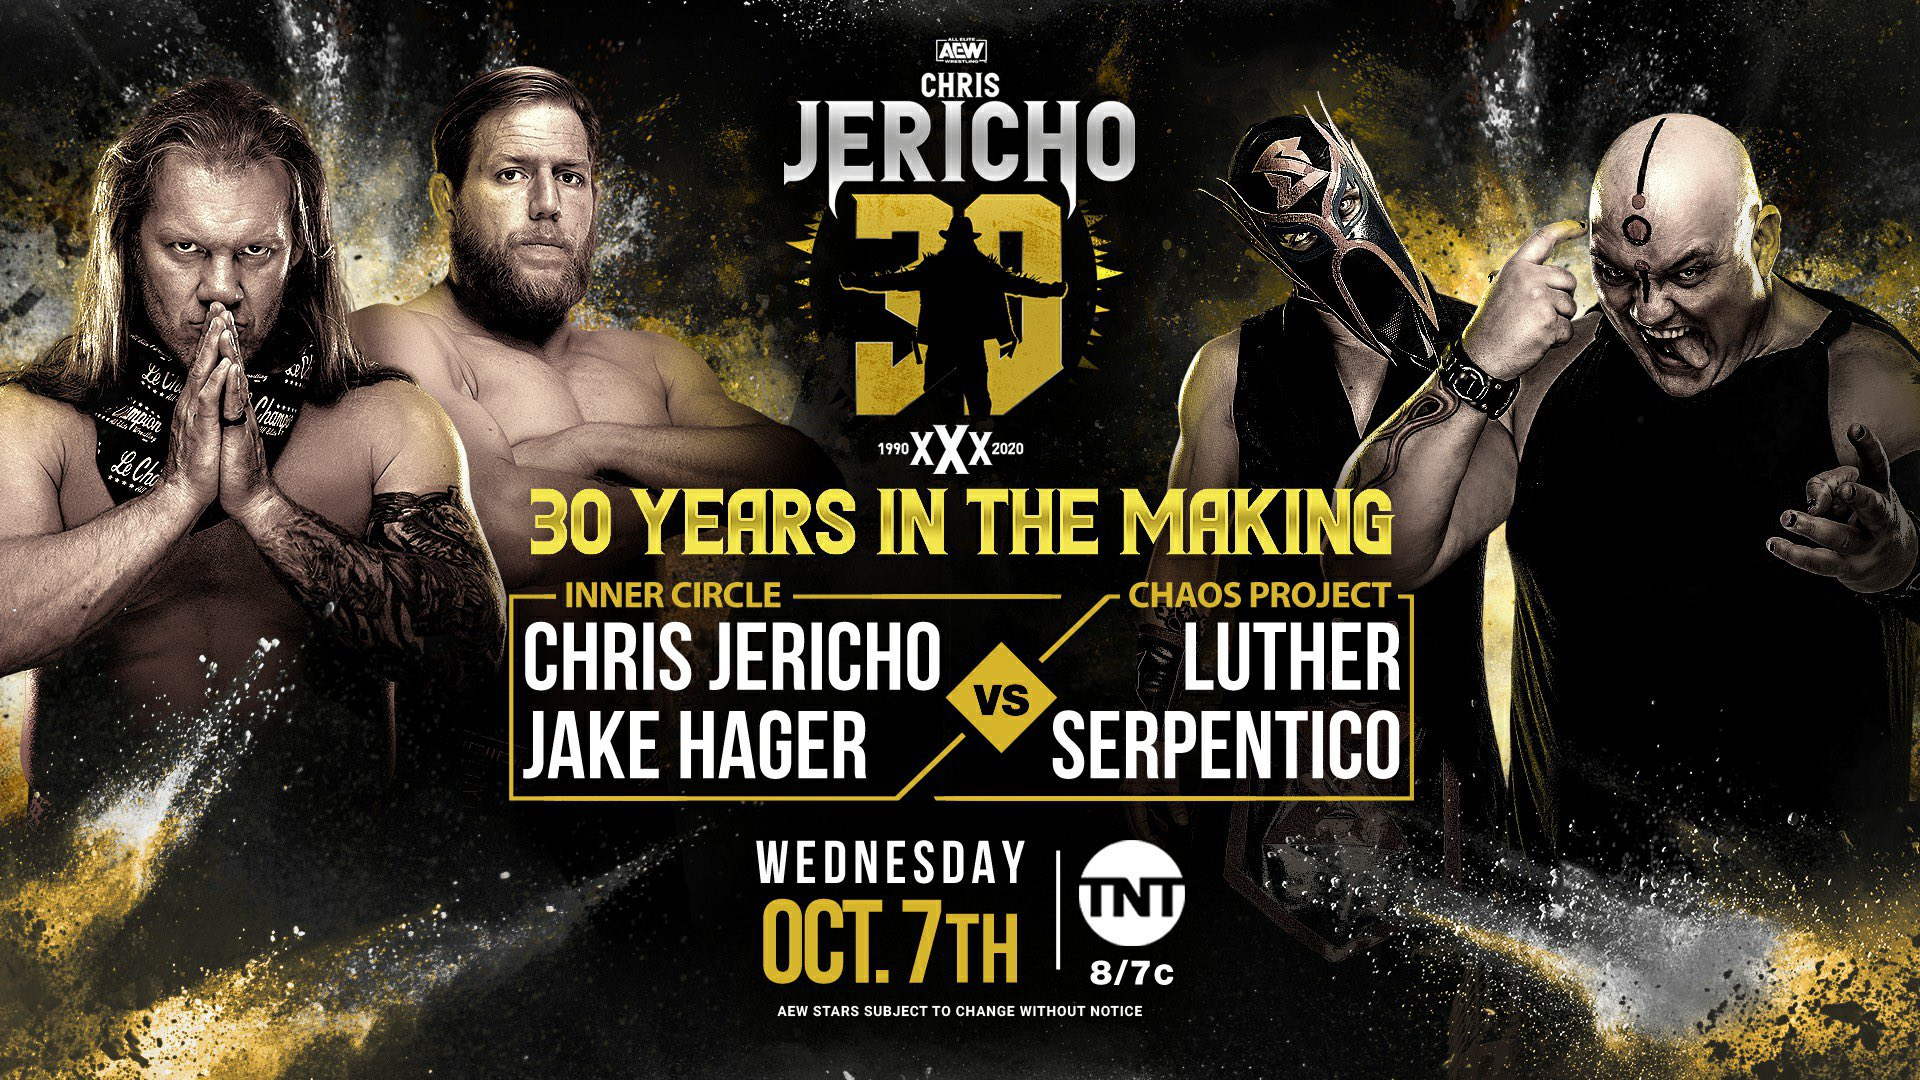 October 7, 2020 AEW Dynamite results